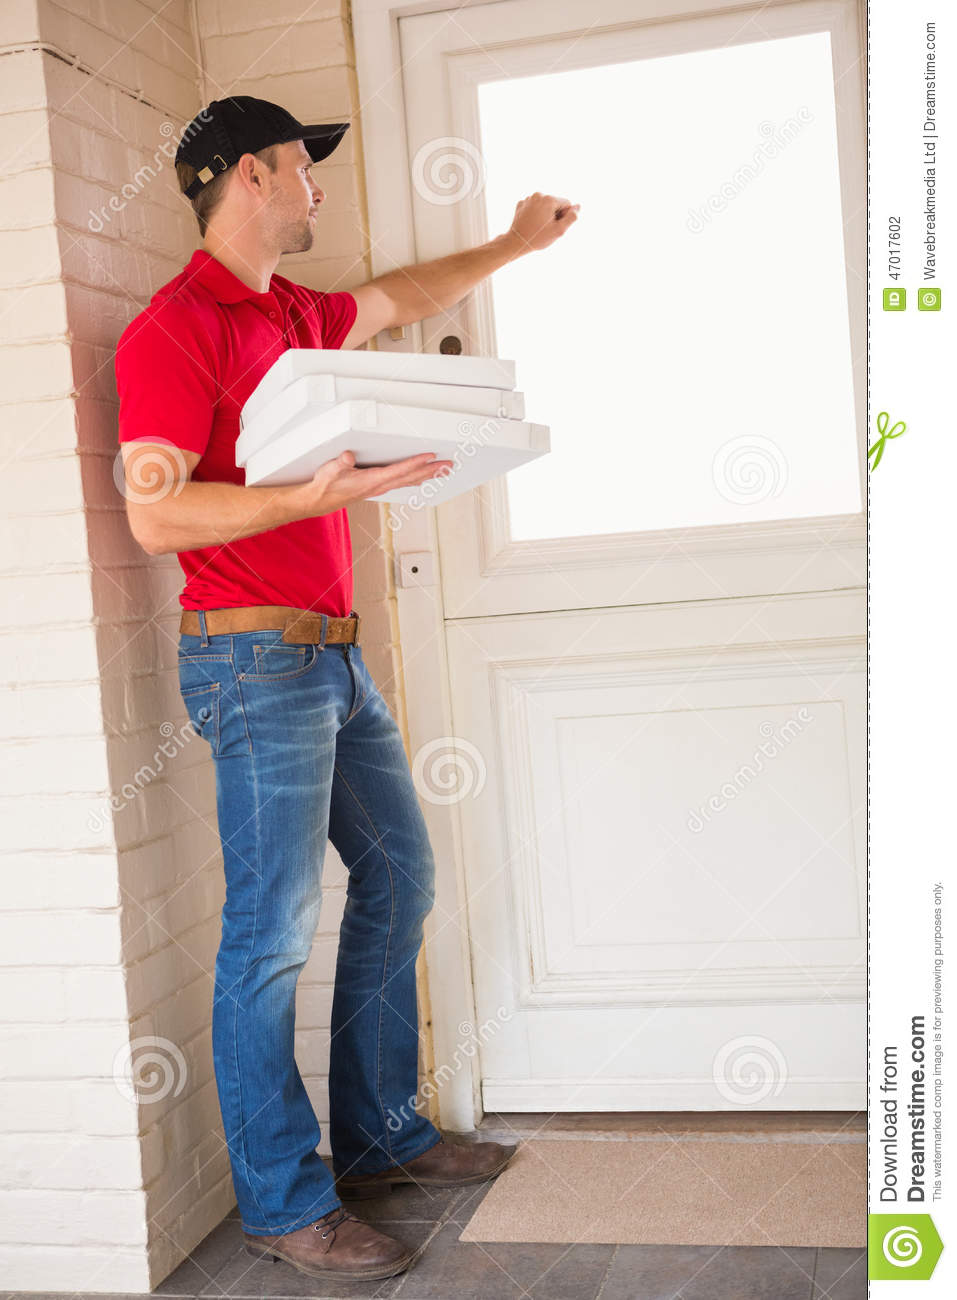 delivery door ... & Delivery Man Holding Pizza While Knocking On The Door Stock Photo ... Pezcame.Com